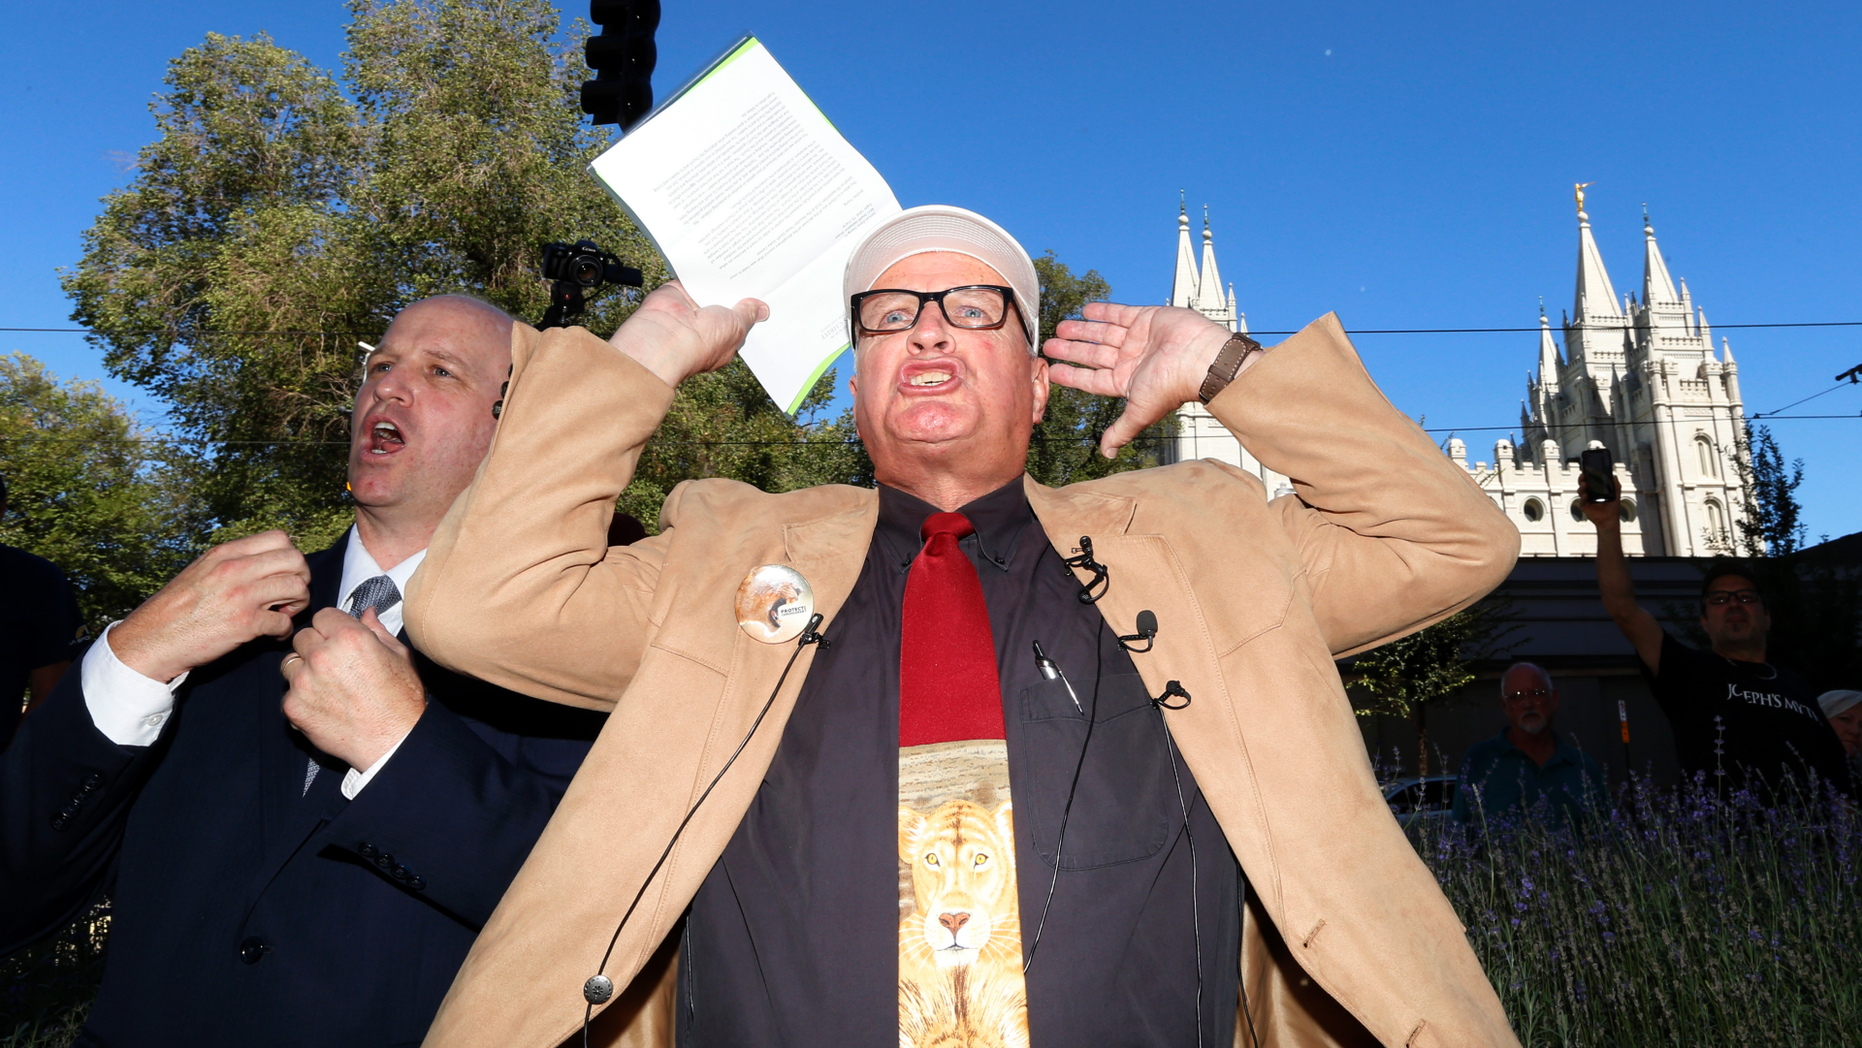 Sam Young reacts after reading a letter detailing his excommunication proceedings from the Mormon Church during a news conference Sunday, Sept. 16, 2018, near Temple Square, in Salt Lake City. Young, a Mormon man who led a campaign criticizing the church's practice of allowing closed-door, one-on-one interviews of youth by lay leaders has been kicked out of the faith. Young, a 65-year-old lifelong Mormon, becomes the third high-profile member of the faith who led protests about church policy to be excommunicated in recent years. (AP Photo/Rick Bowmer)